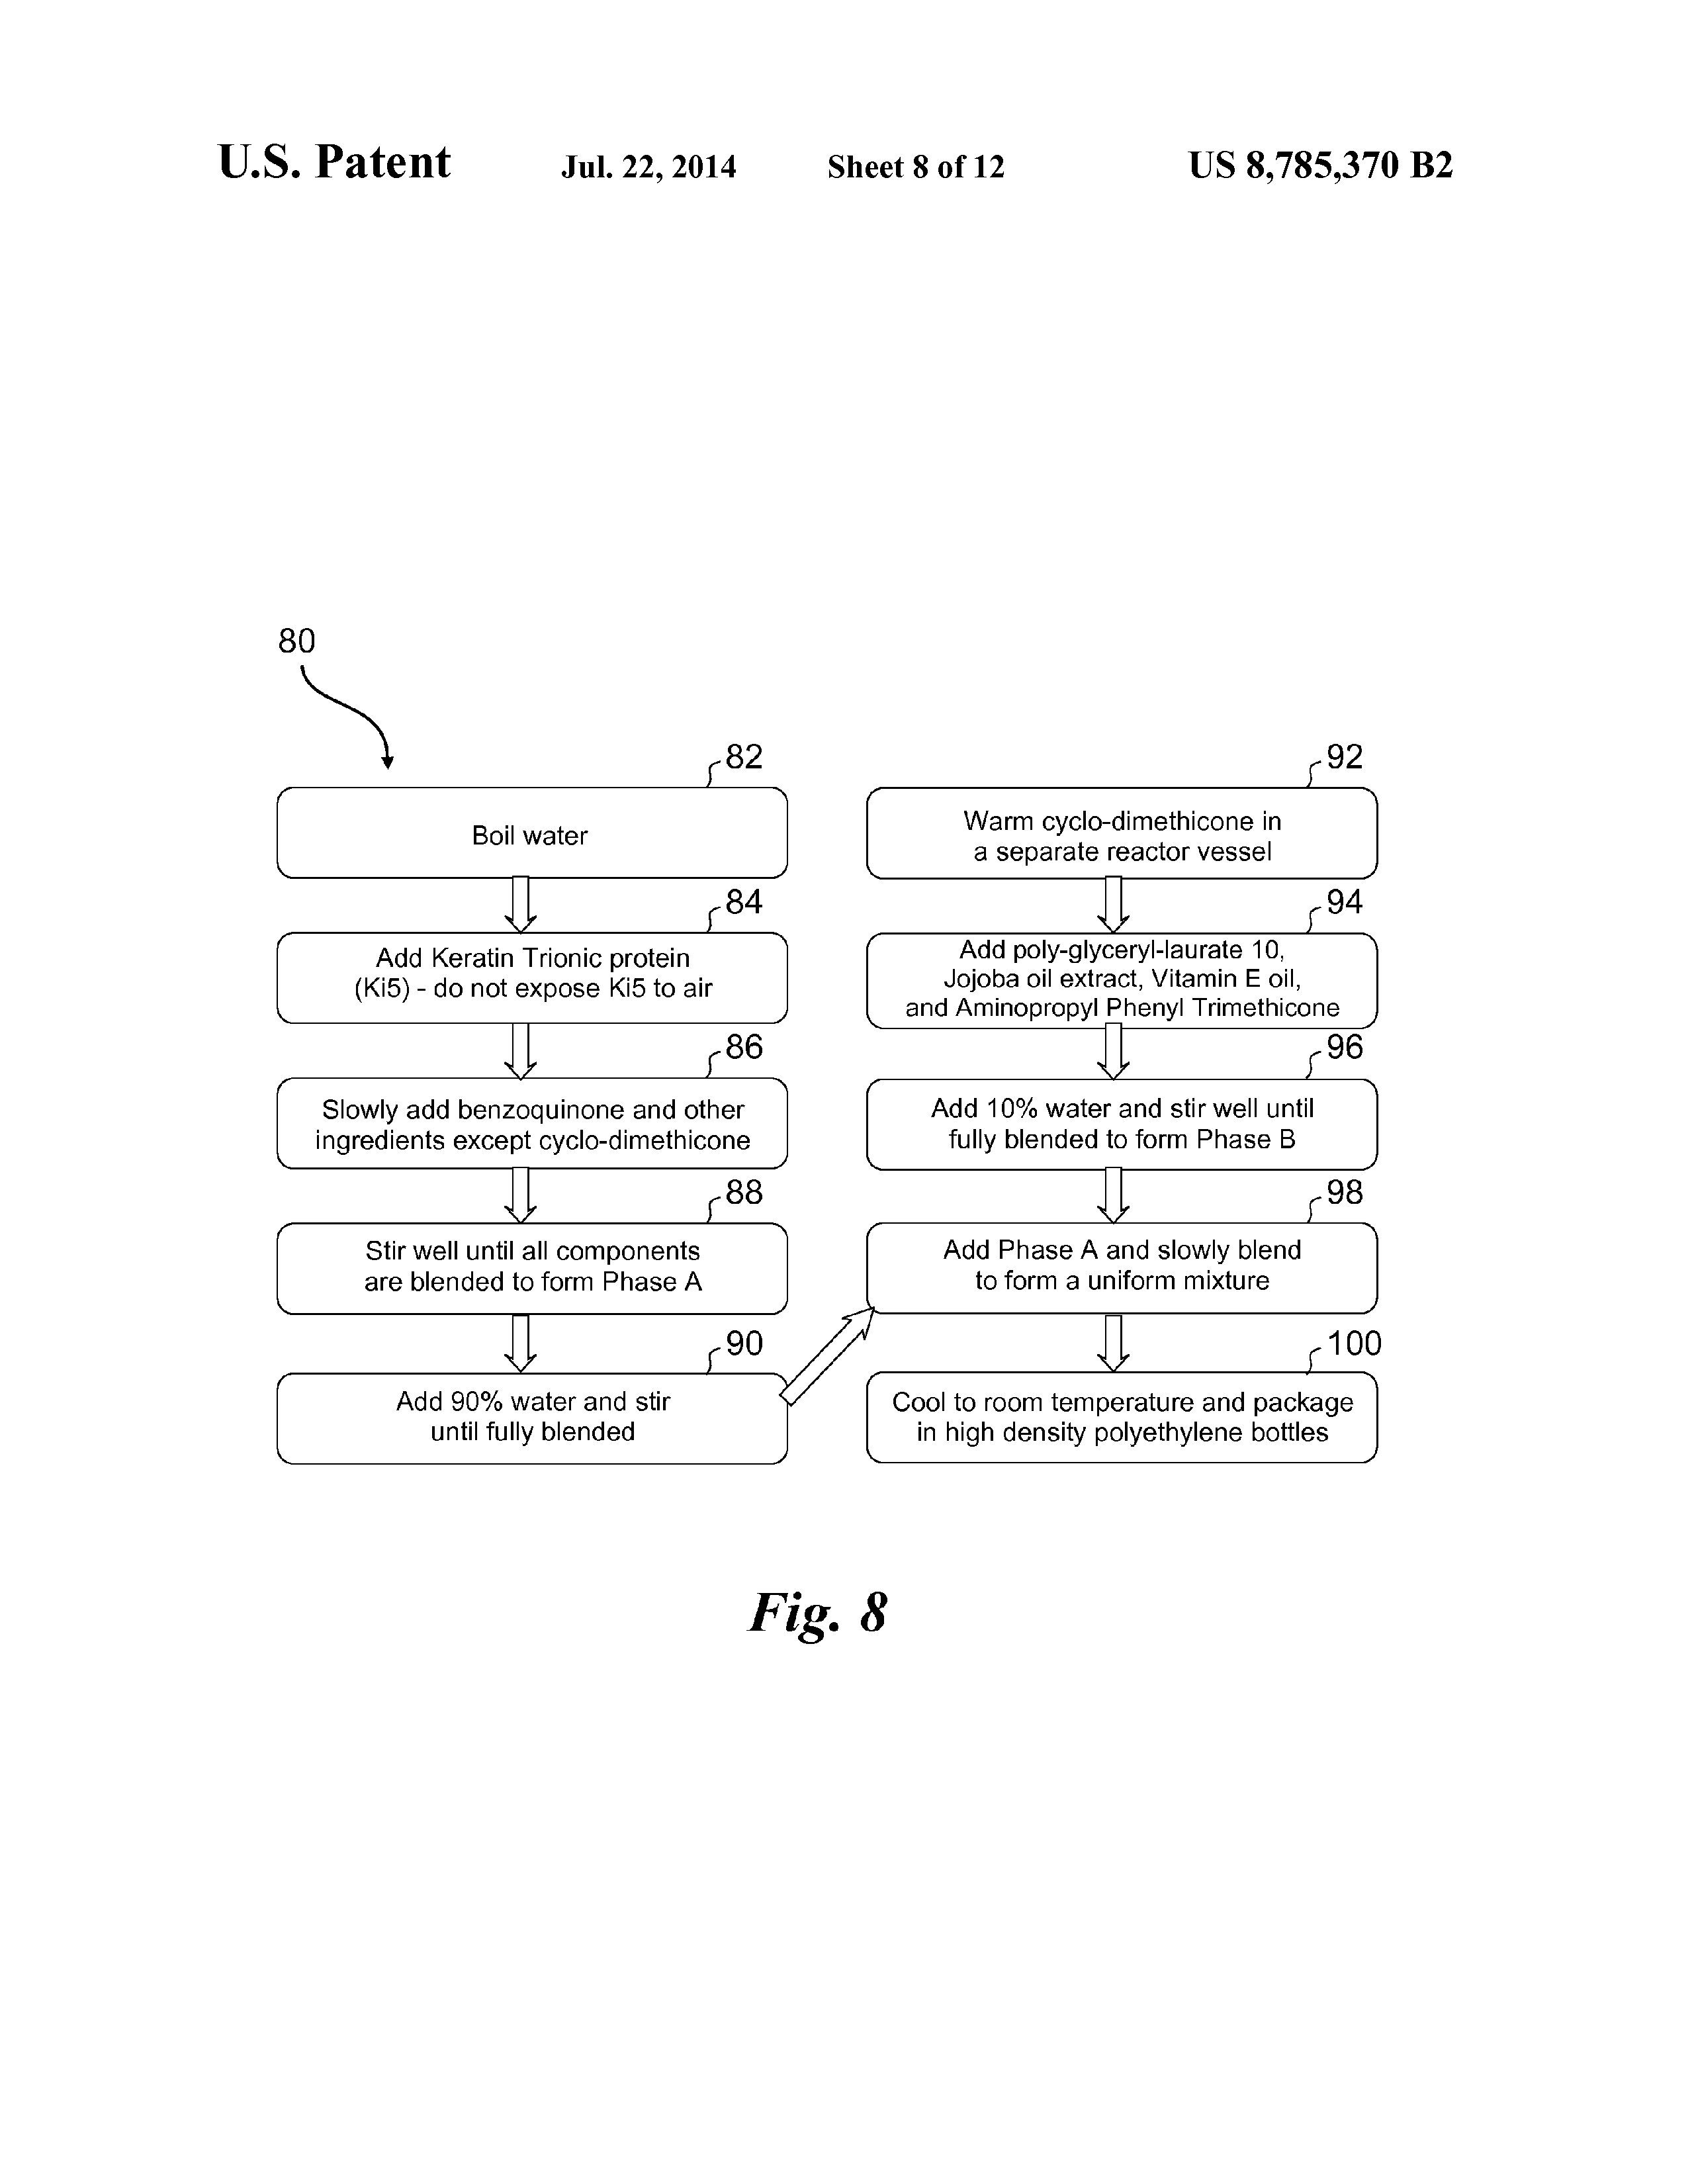 US 8785370 B2 - Reactive Keratin Protein Formulations And Methods Of